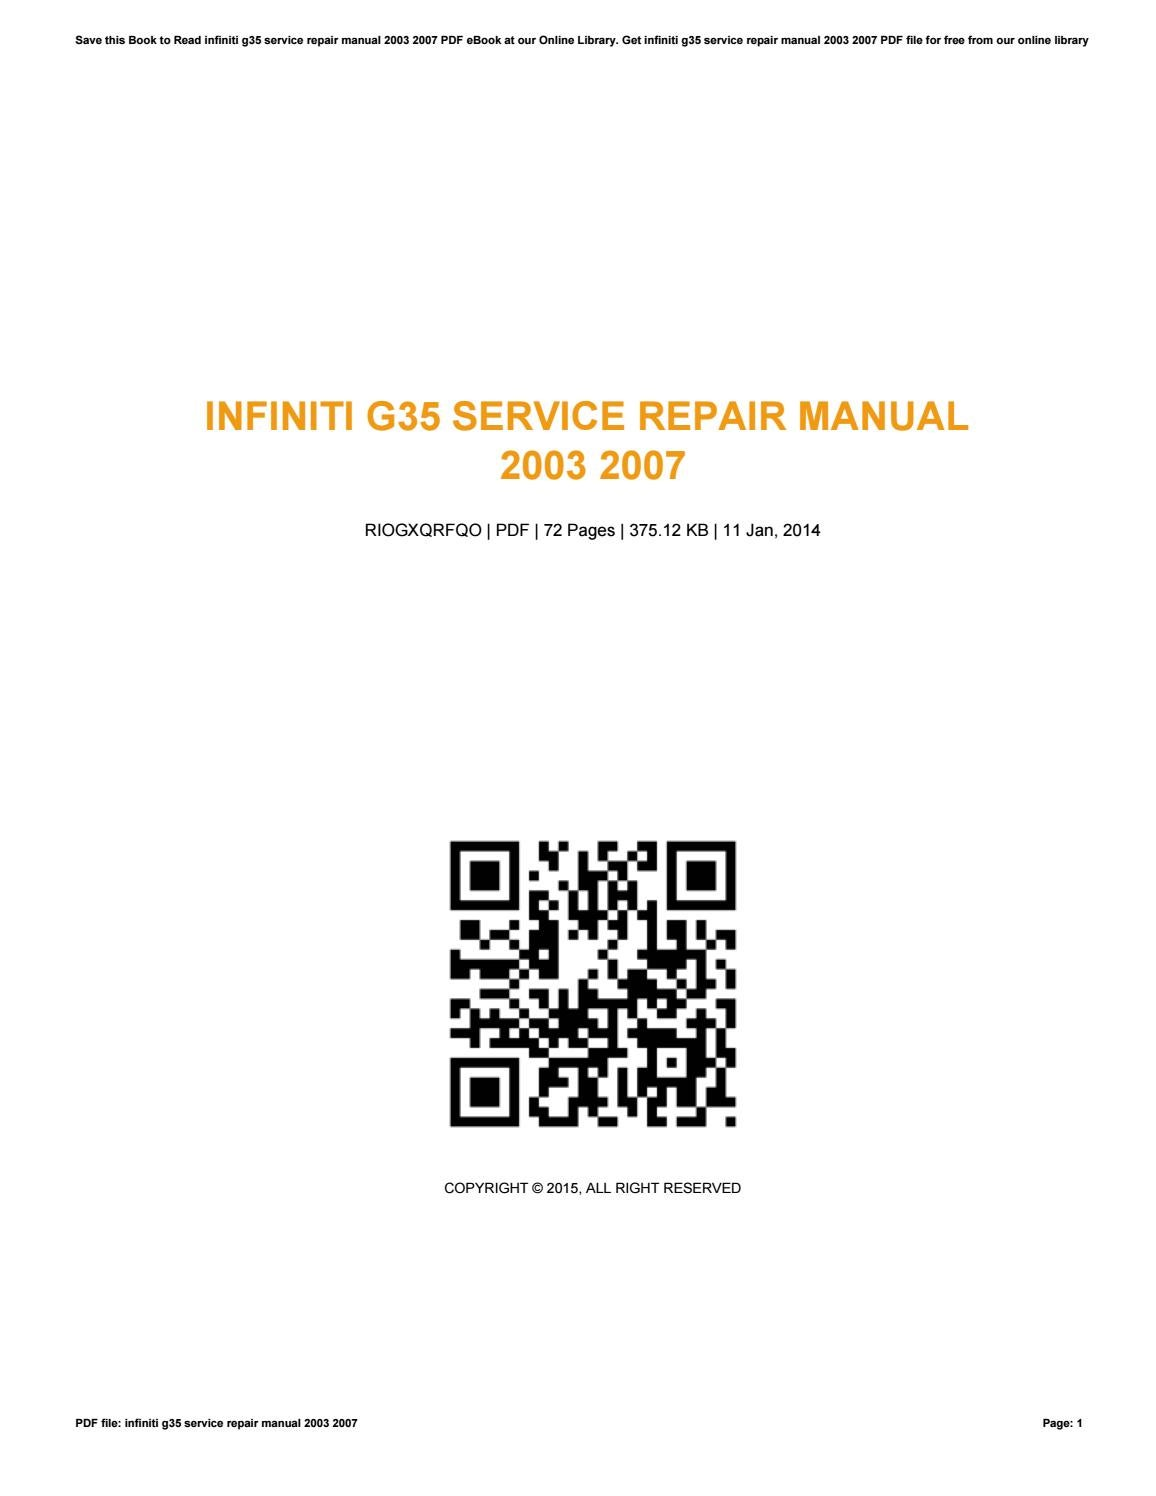 Infiniti g35 service repair manual 2003 2007 by JosephJohnson36921 - issuu